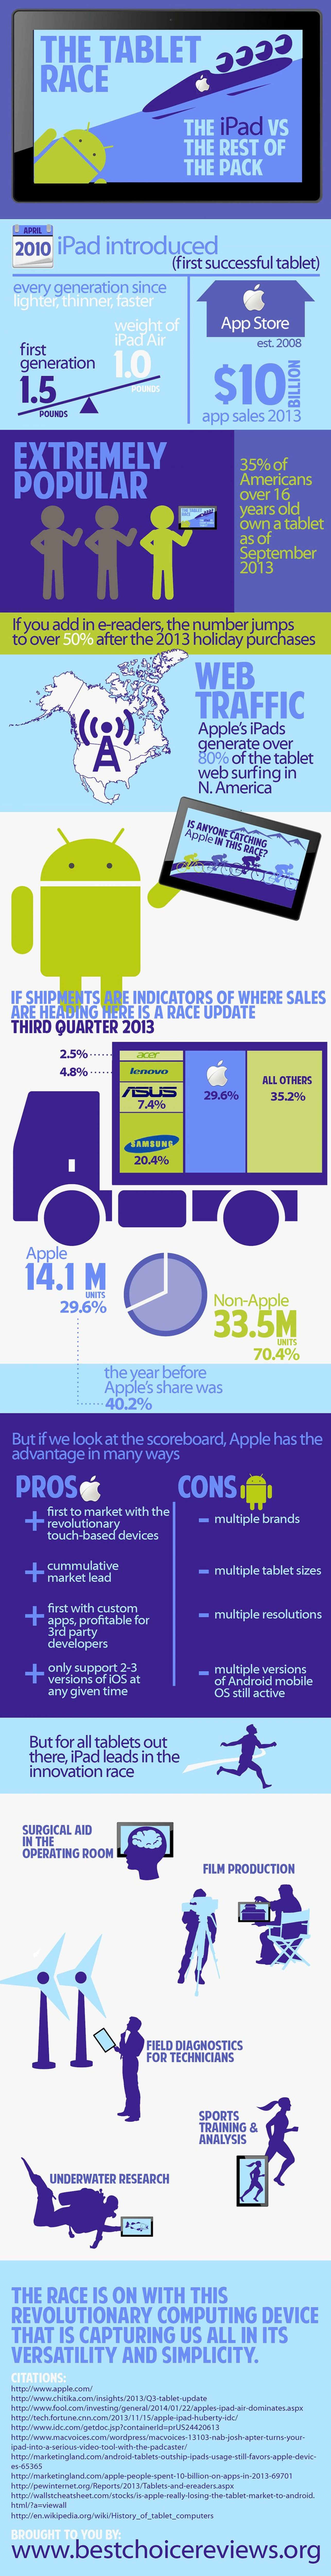 The Tablet Race Infographic